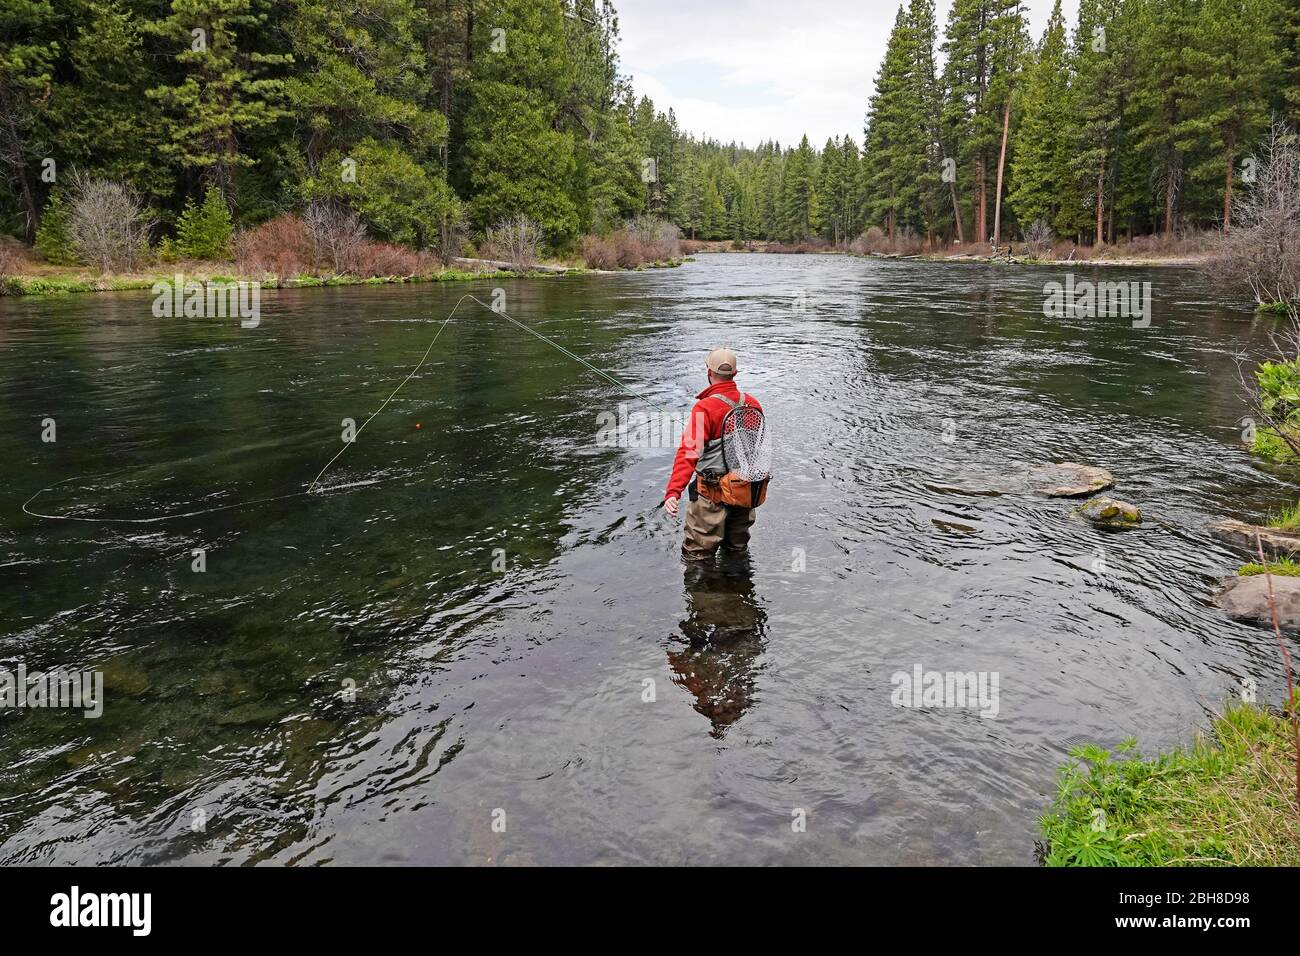 An angler casts for rainbow trout on the Metolius River in central Oregon's Cascade Mountains near the small town of Camp Sherman, Oregon. Stock Photo